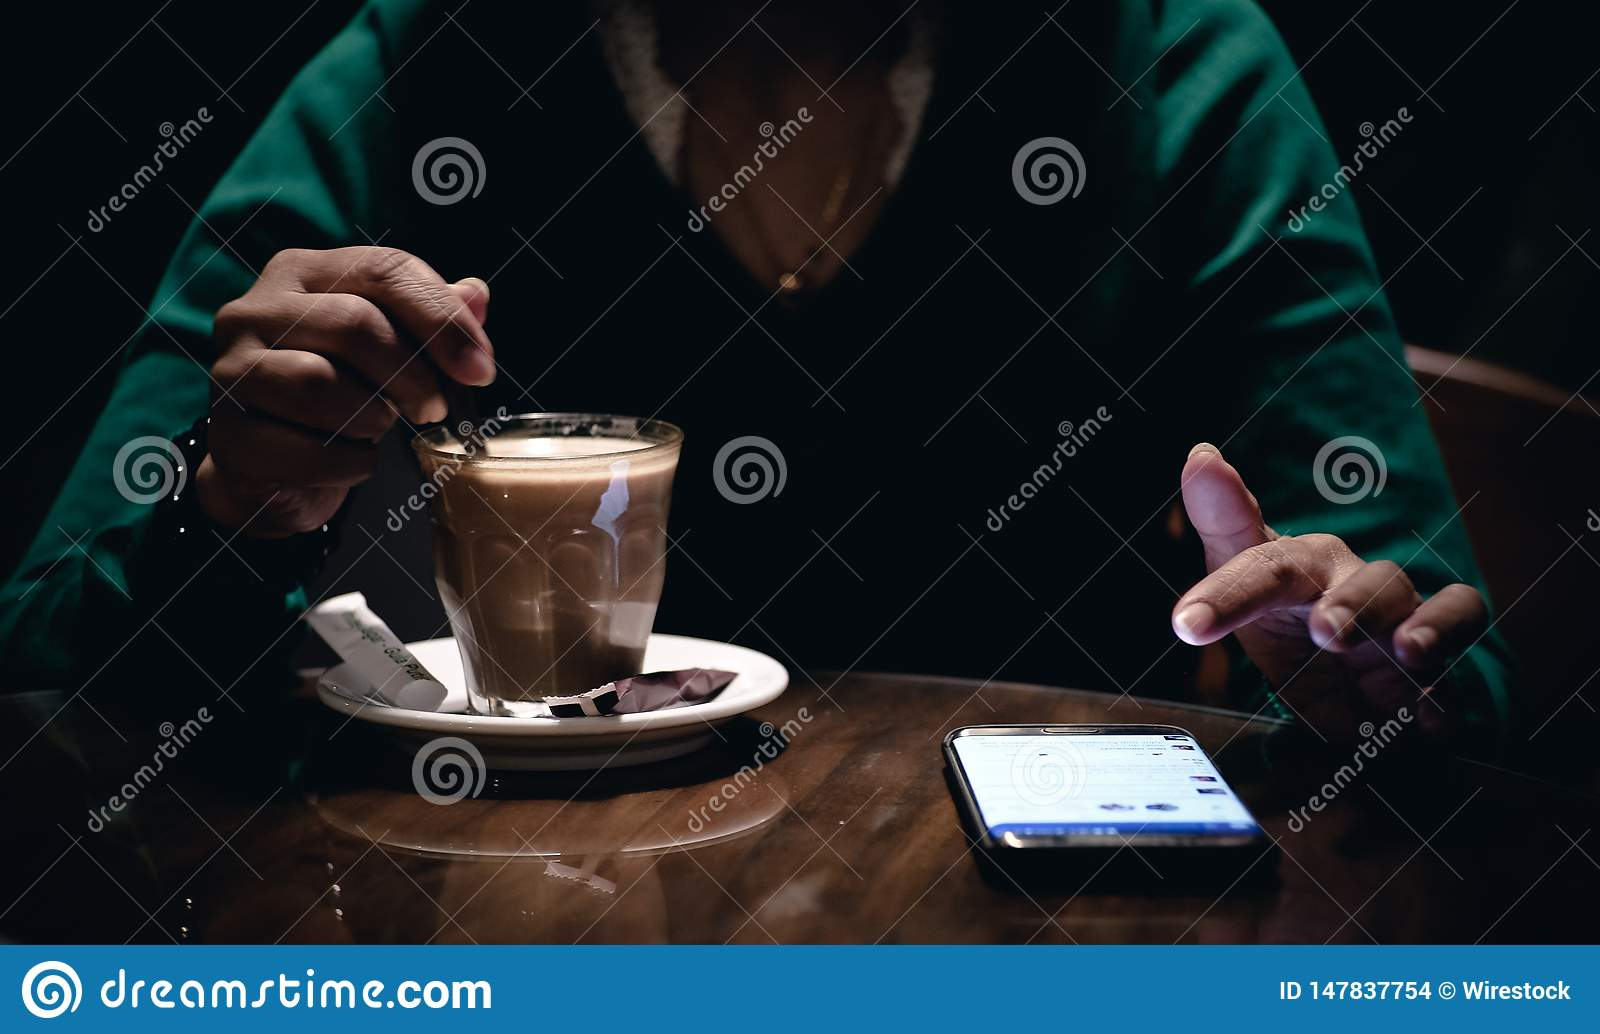 An adult female using her phone and drinking coffee in a dark room